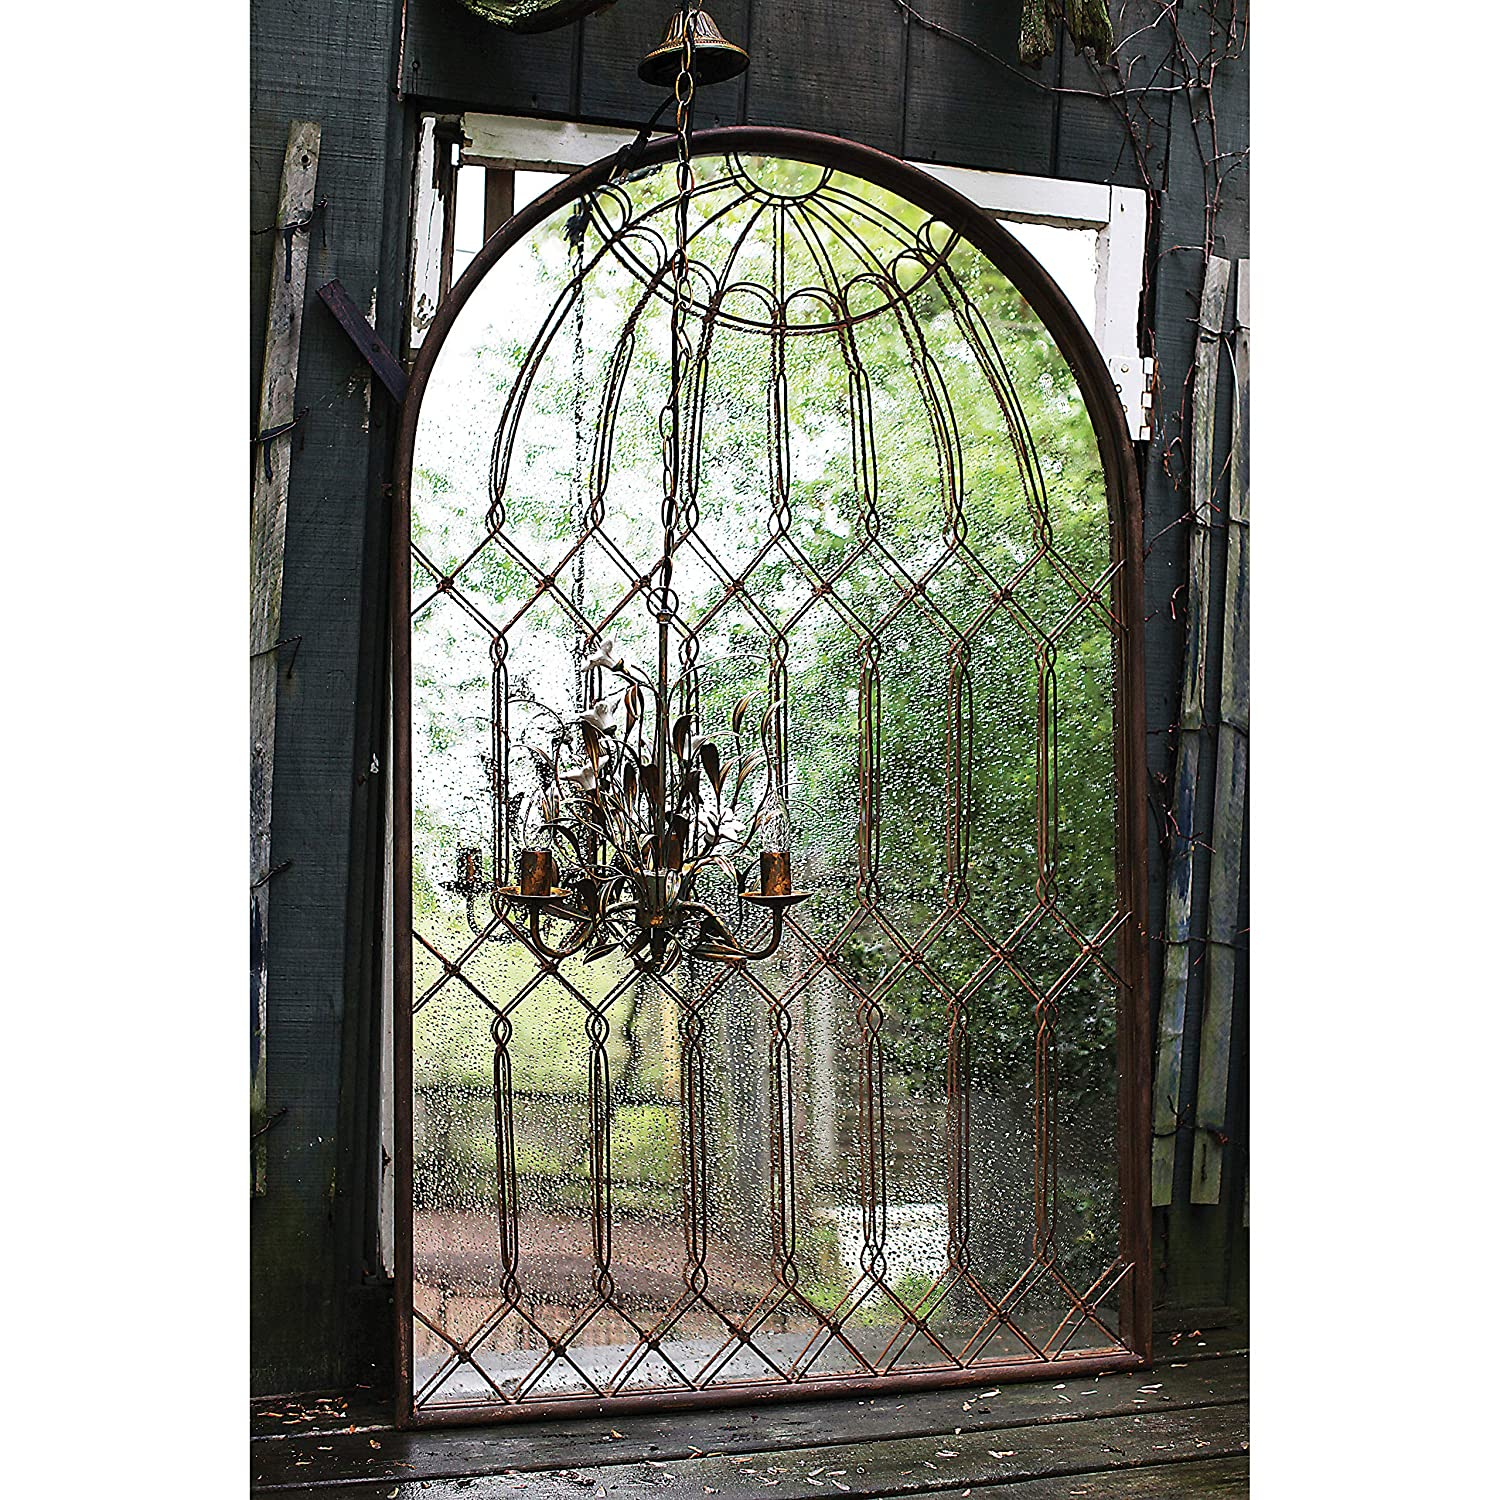 French farmhouse style iron arch top mirror with birdcage like style.